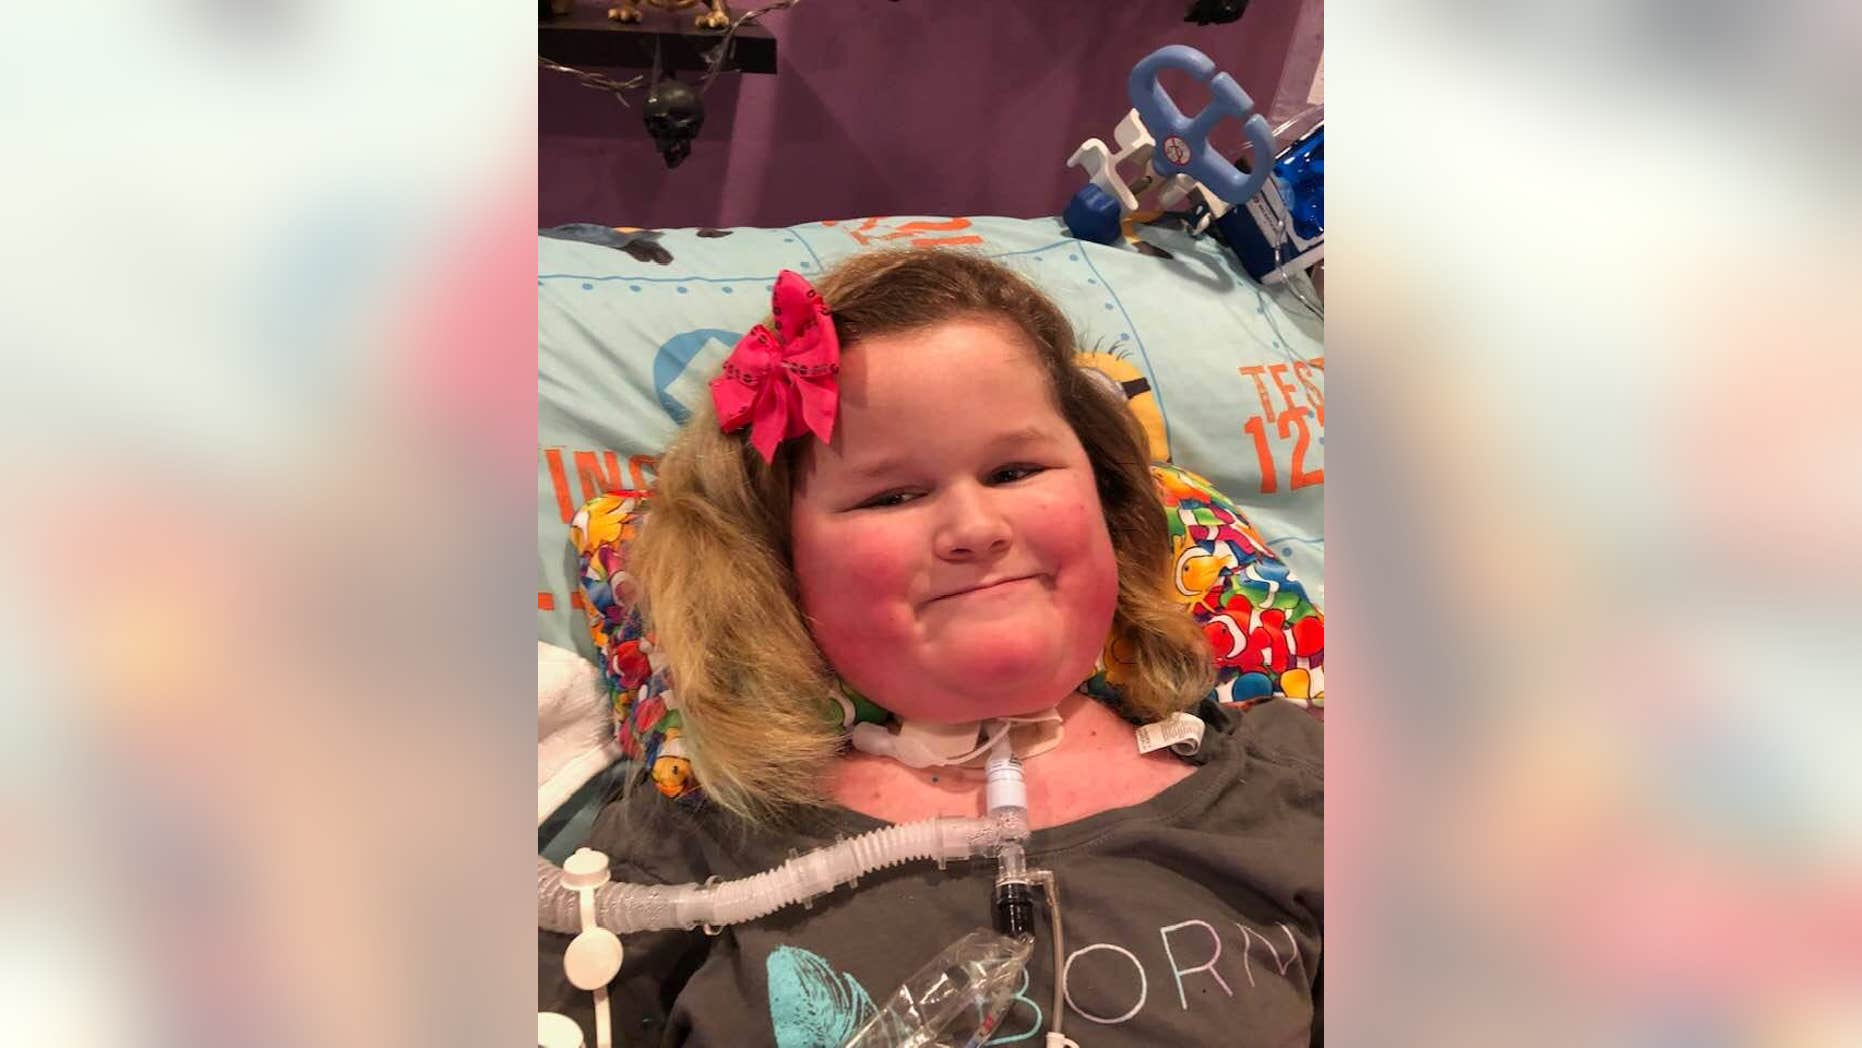 Angie Andersen says her daughter McKenzie, pictured, was diagnosed with acute flaccid myelitis (AFM) in 2014.